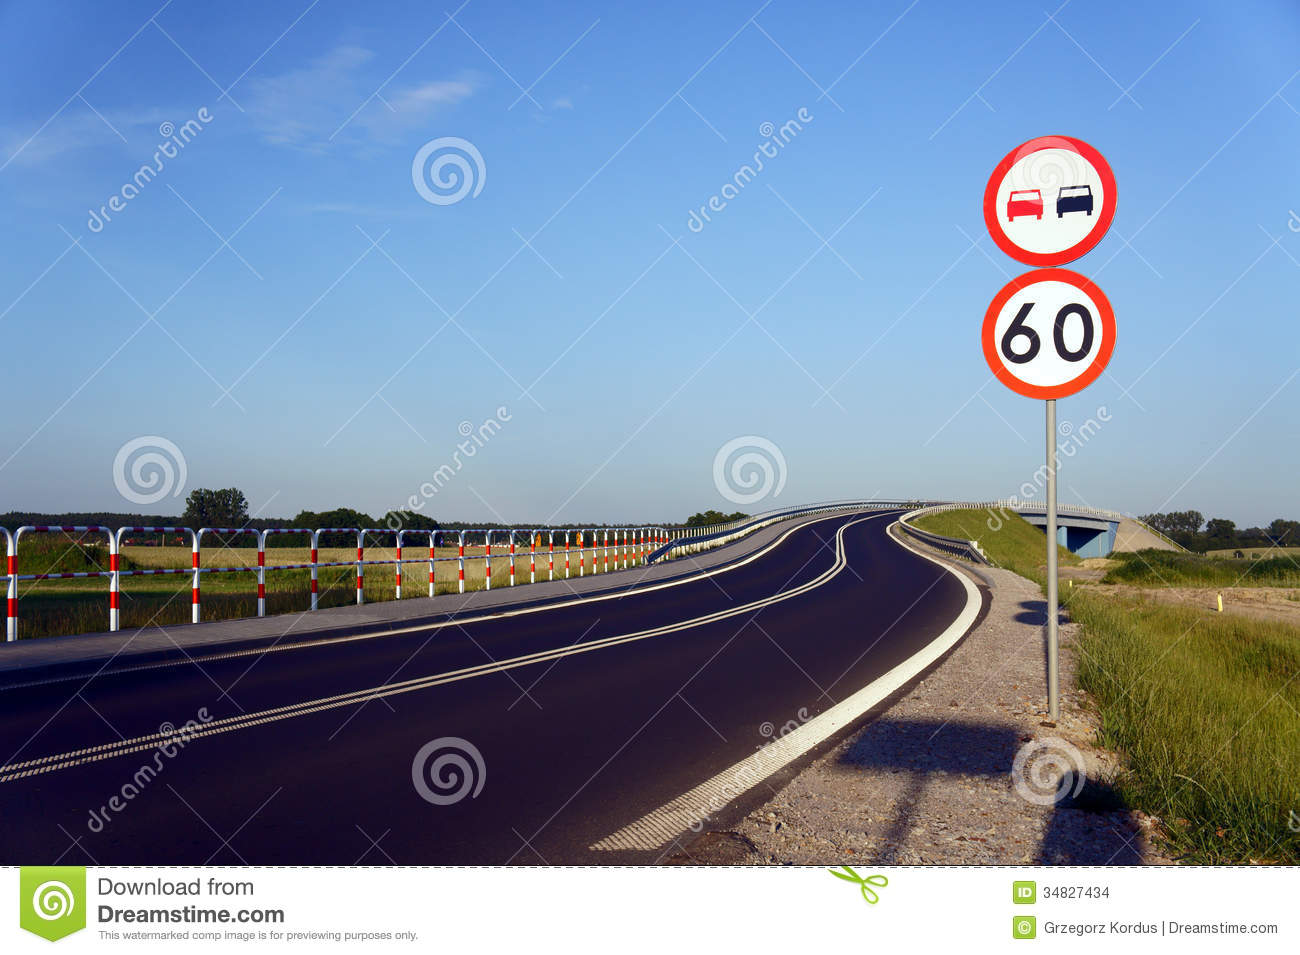 Traffic Signs Along The Road Stock Images - Image: 34827434